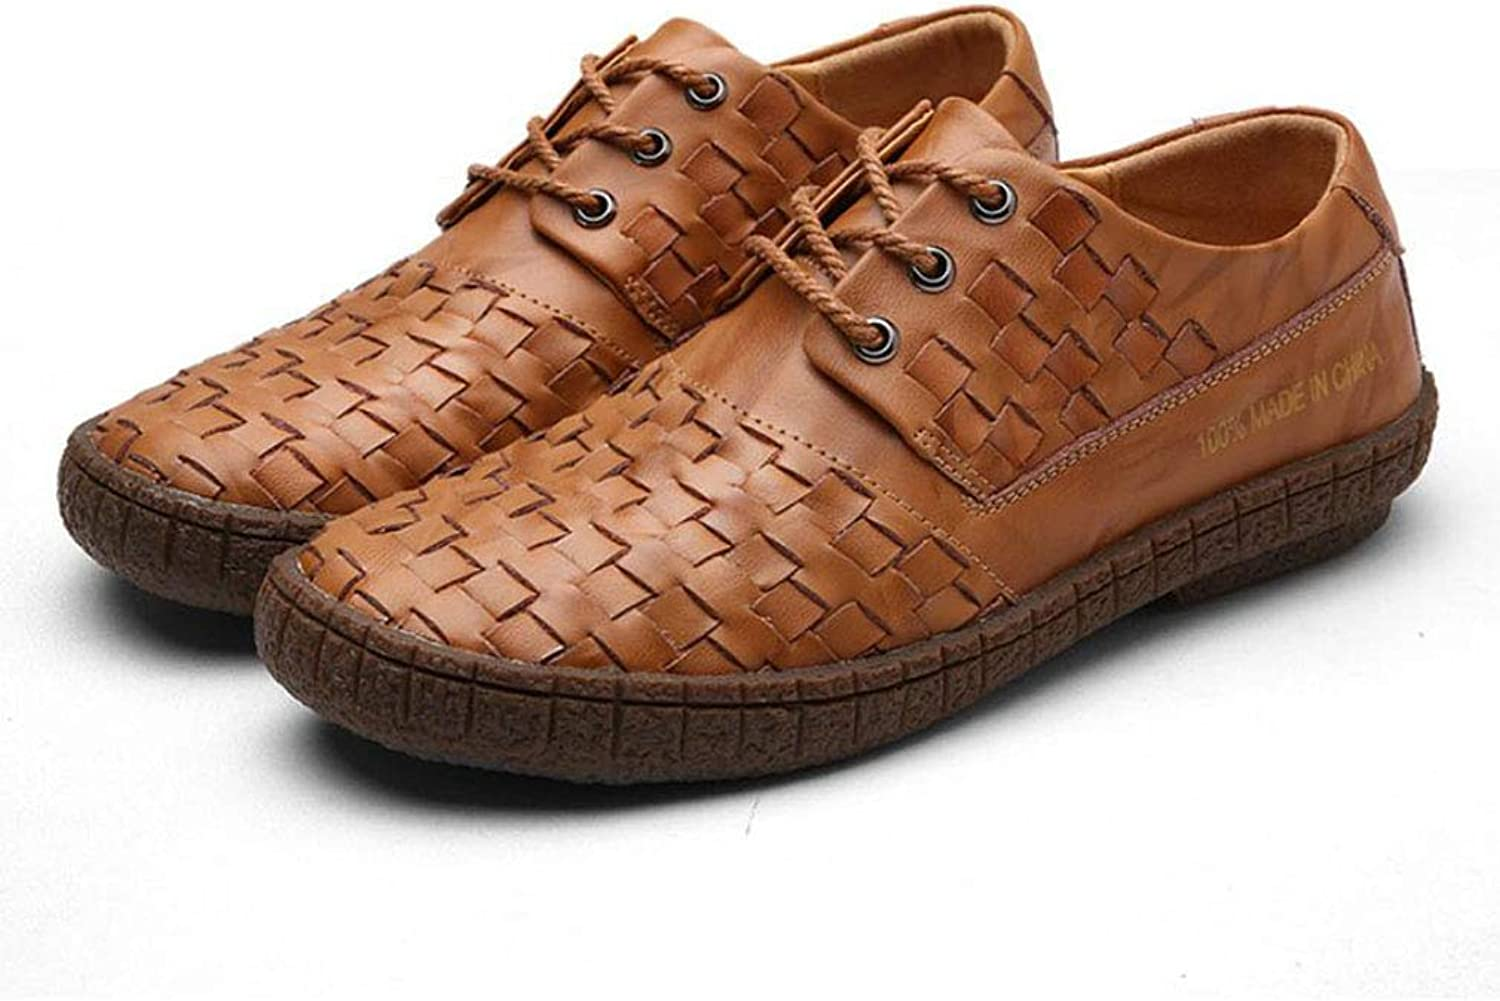 Men's shoes 2018 New Lace-up Woven shoes Leather Fashion Low-top Casual shoes Business shoes Driving shoes YAN